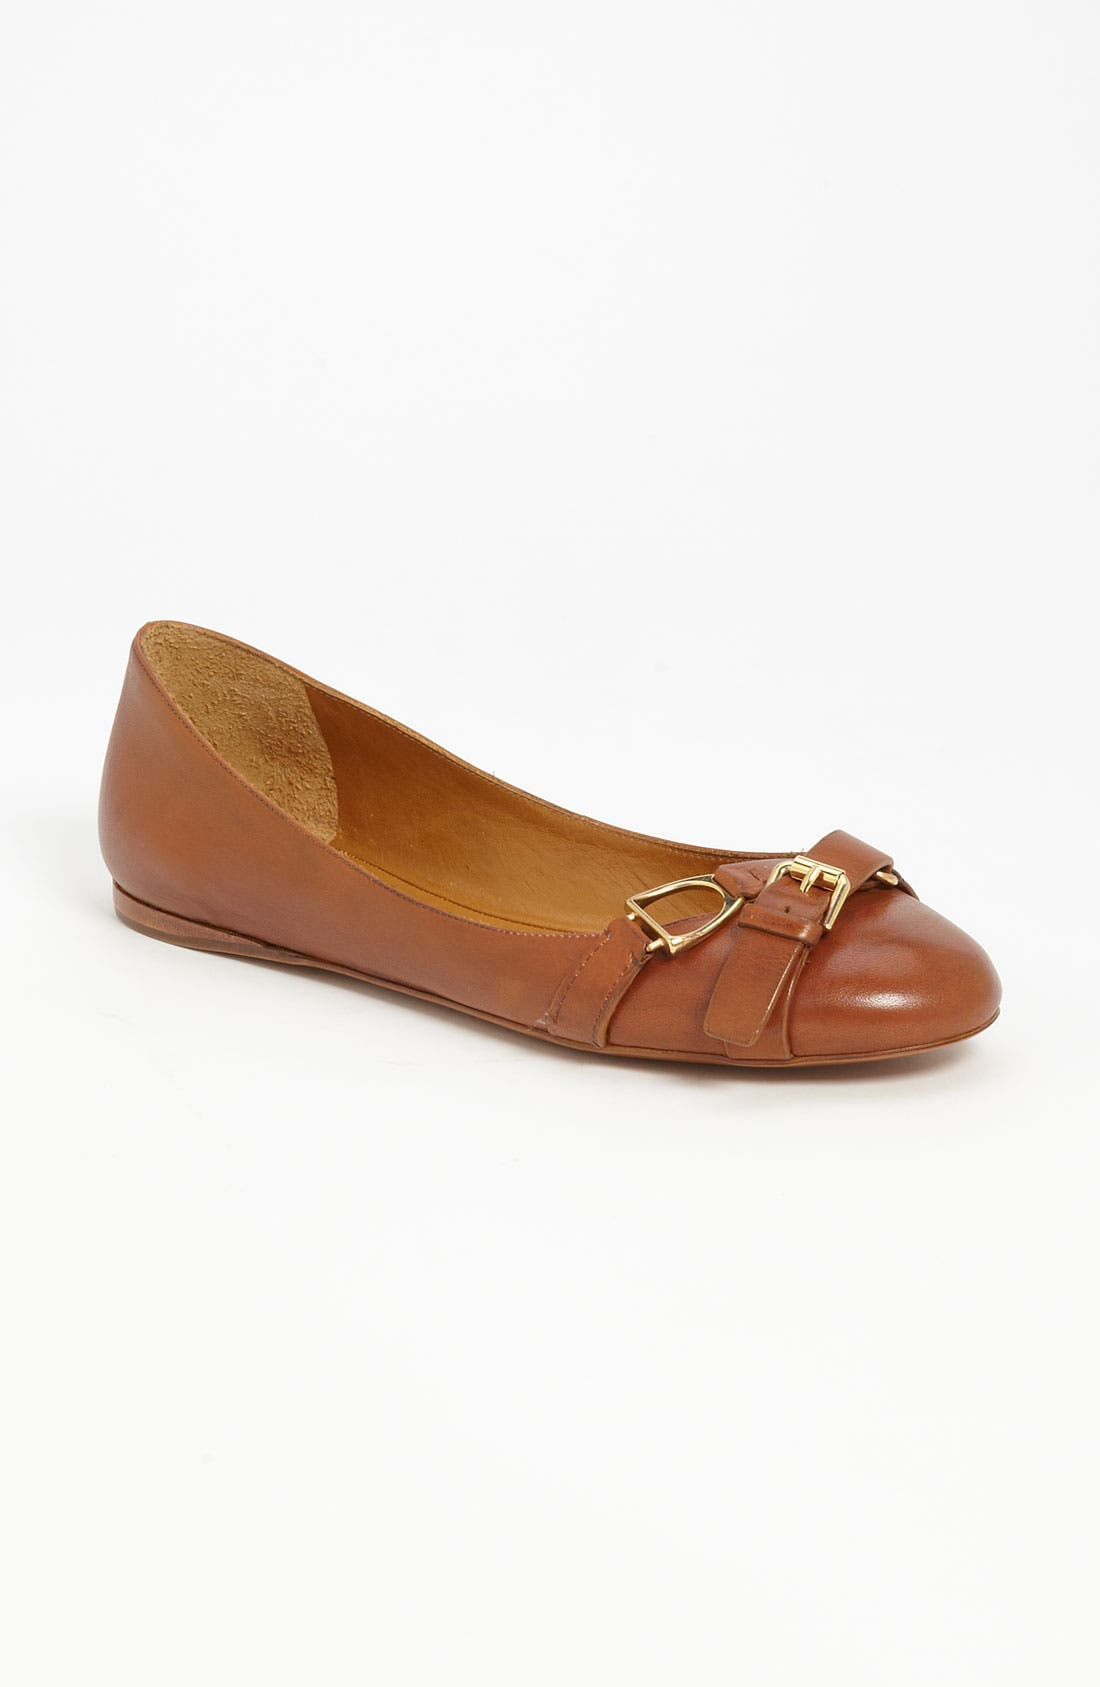 Alternate Image 1 Selected - Ralph Lauren Collection 'Umina' Flat